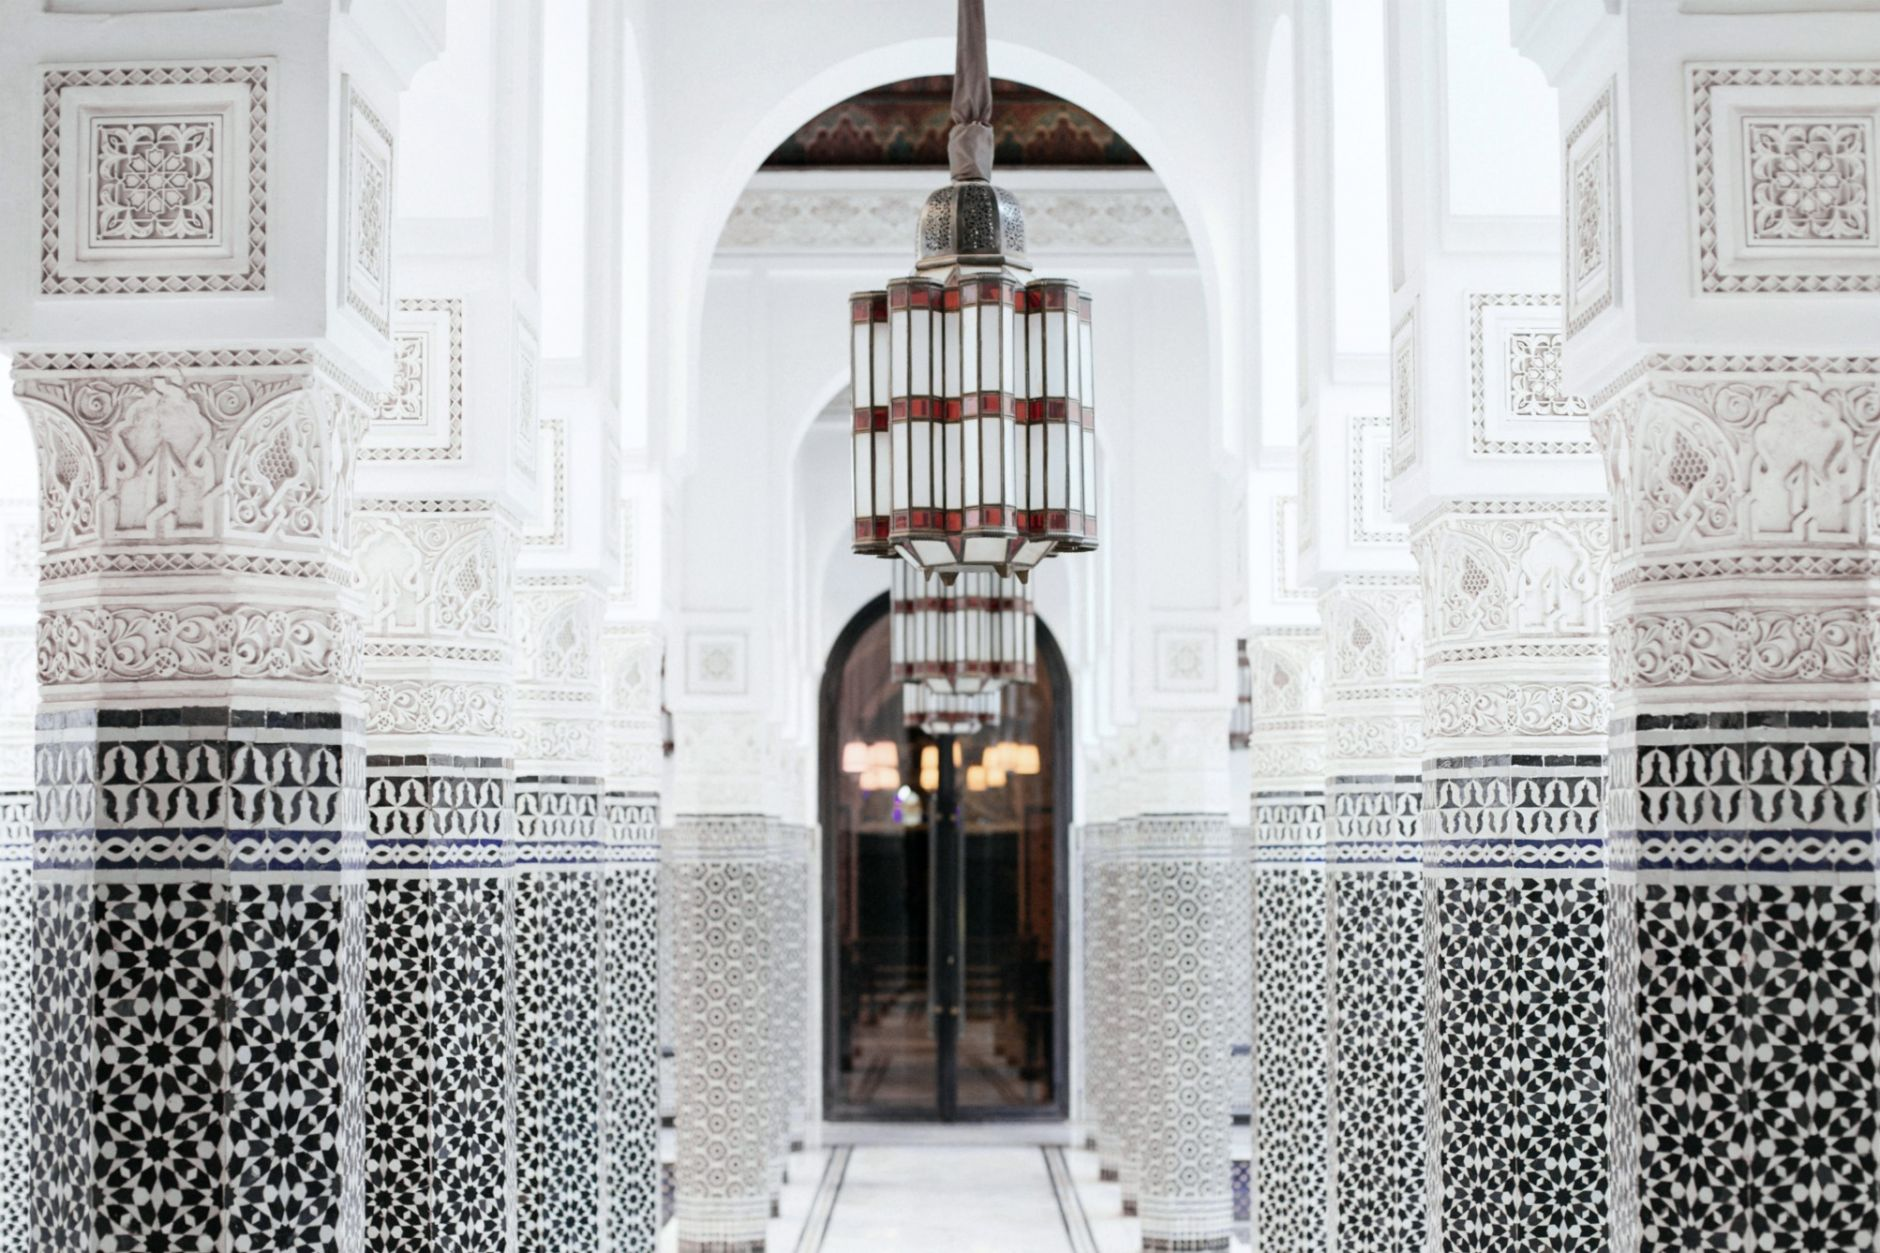 palace-in-marrakesh-morocco-la-mamounia-5-star-luxury-hotel-spa-11